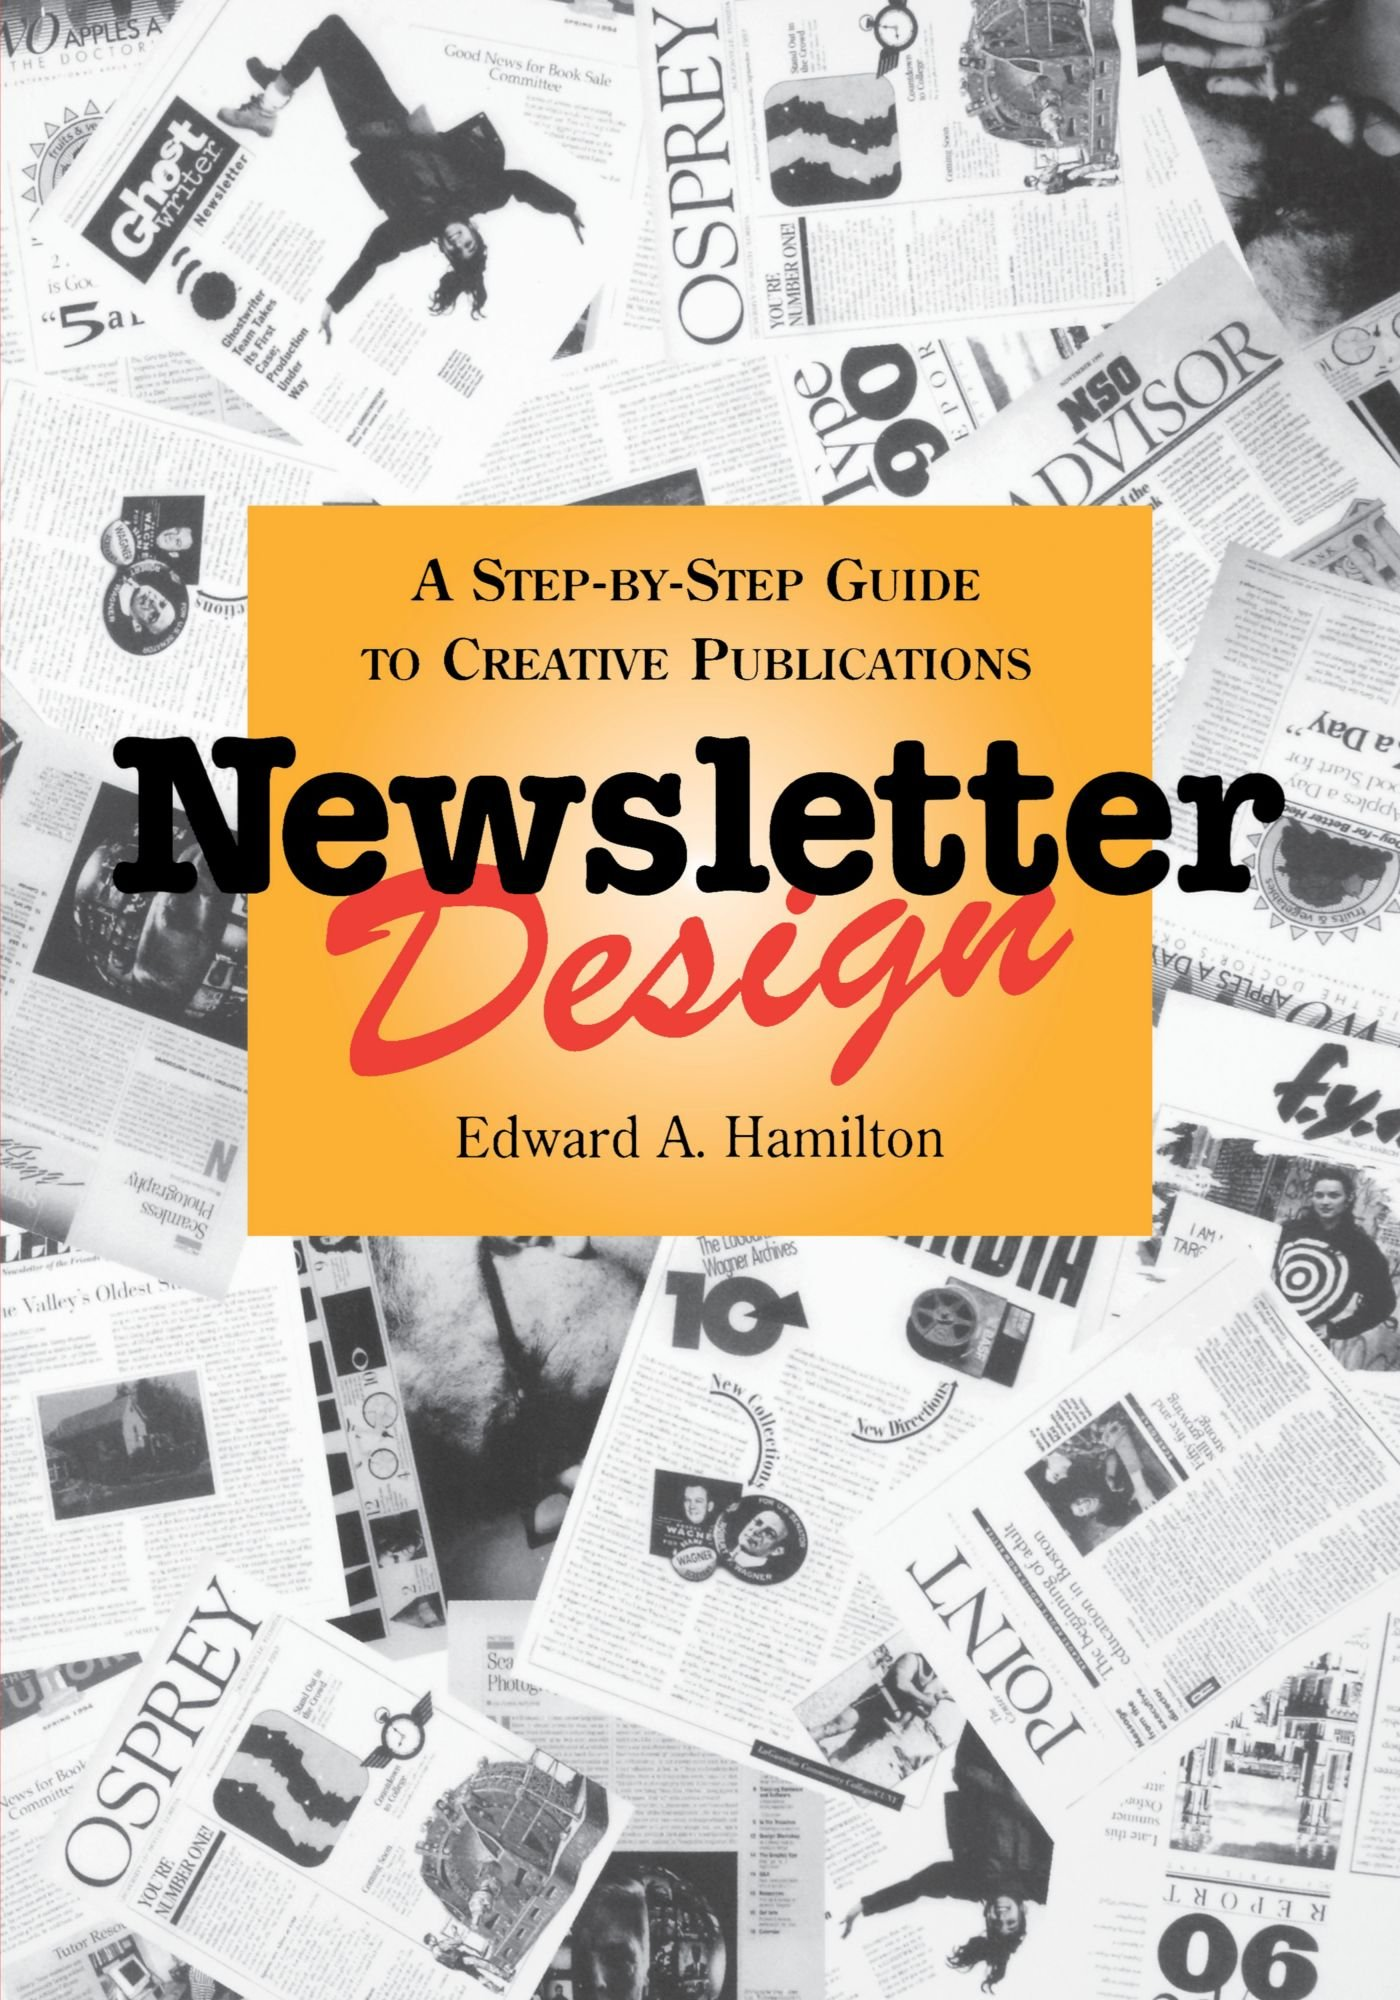 newsletter-design-a-step-by-step-guide-to-creative-publications